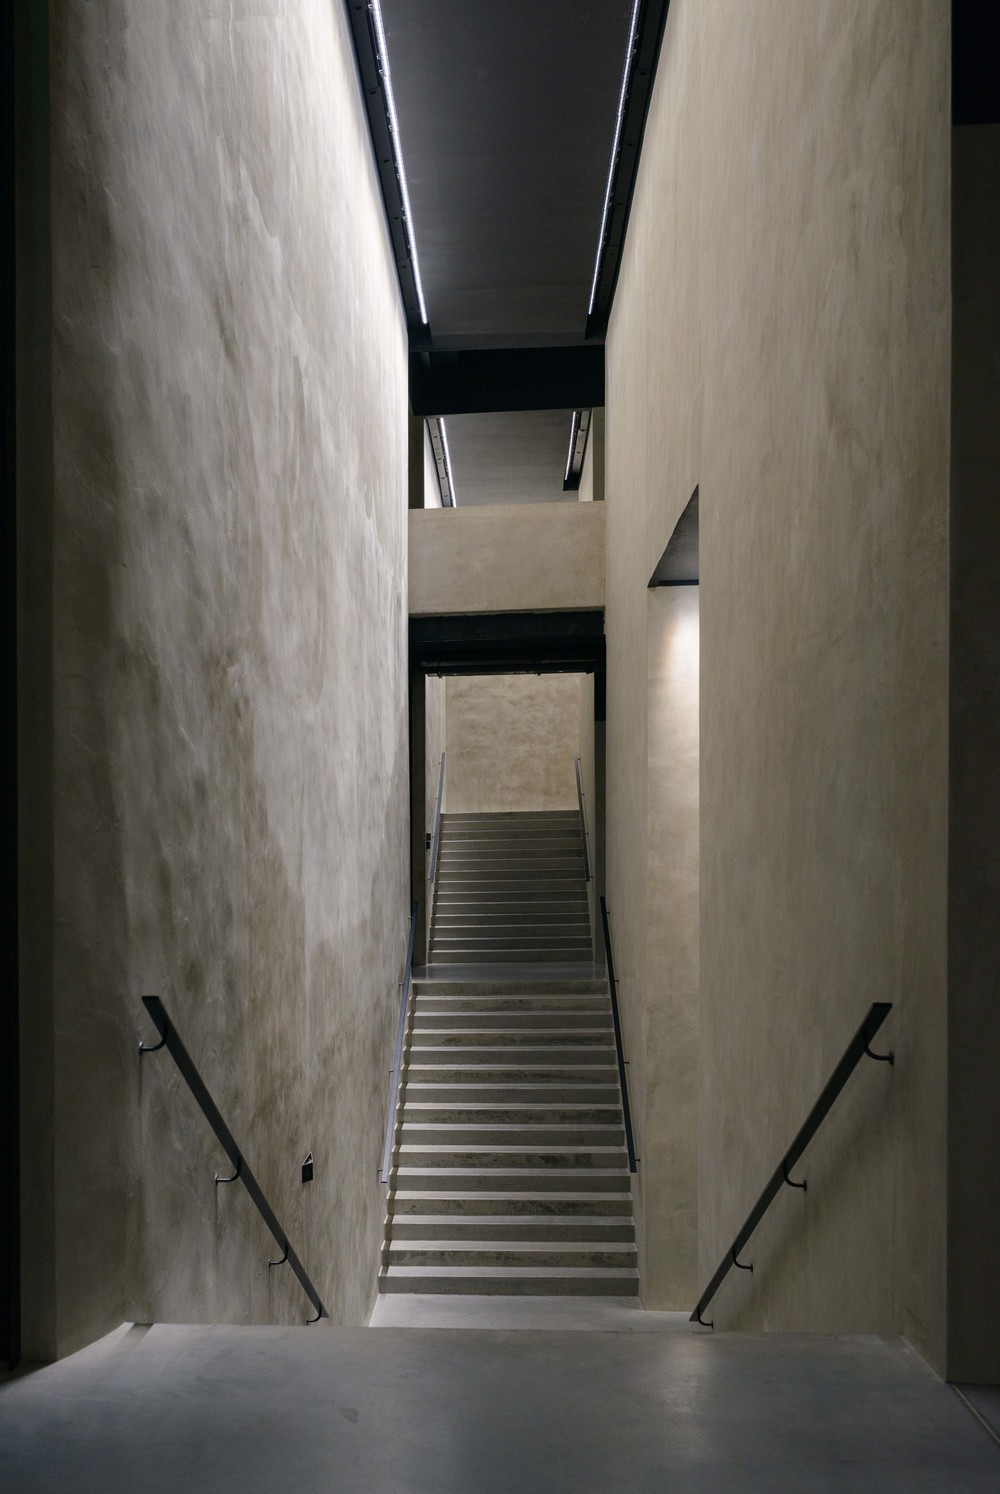 The central staircase linking the four levels and organising the exhibition route passes through a vertical opening.